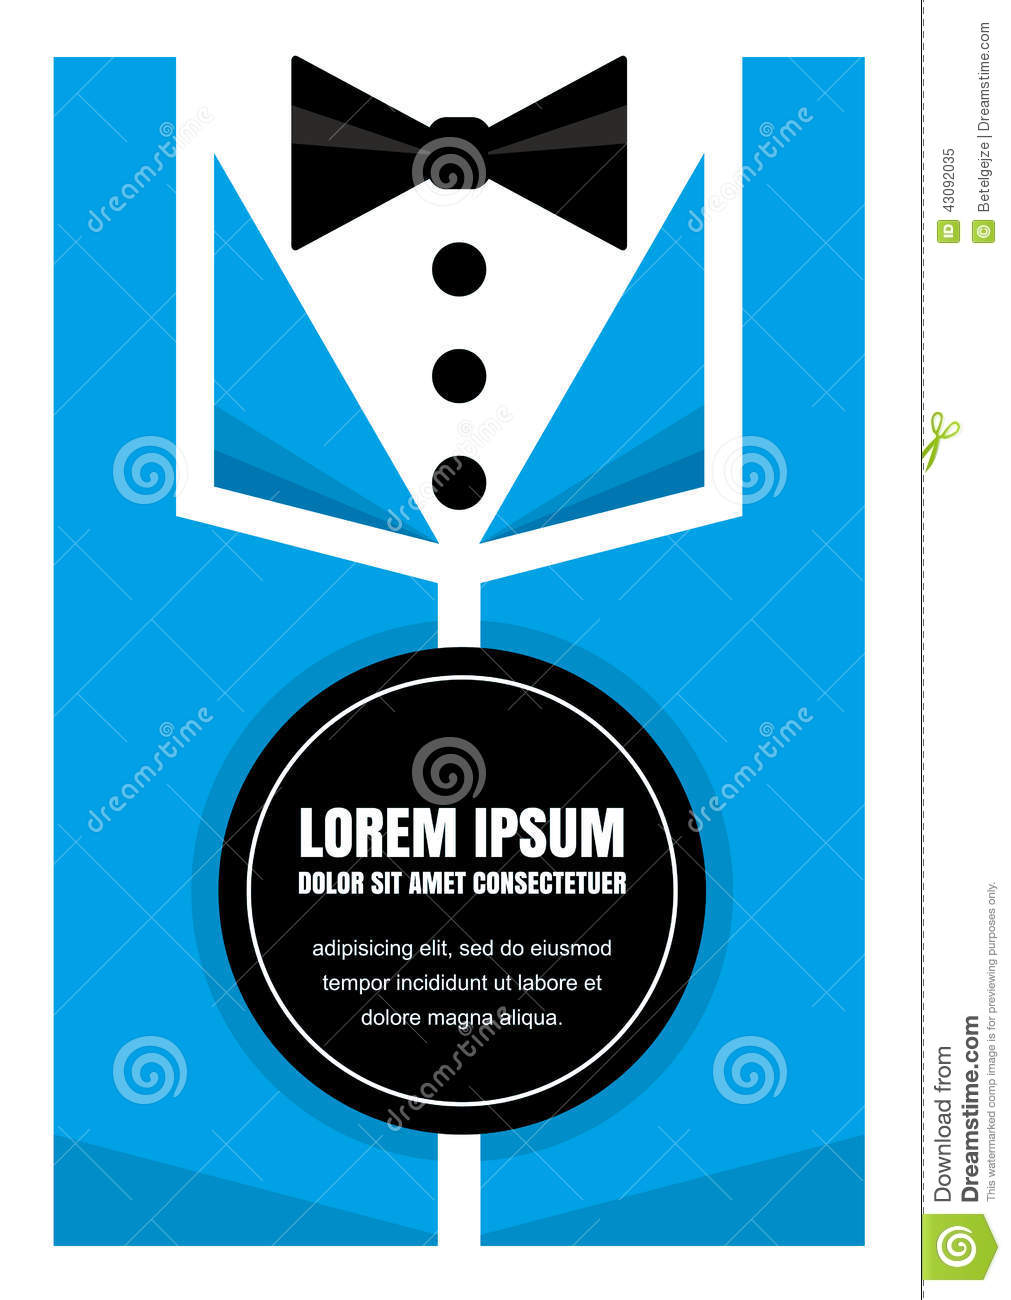 Tuxedo With Bow Tie Idea Concept Background Design For